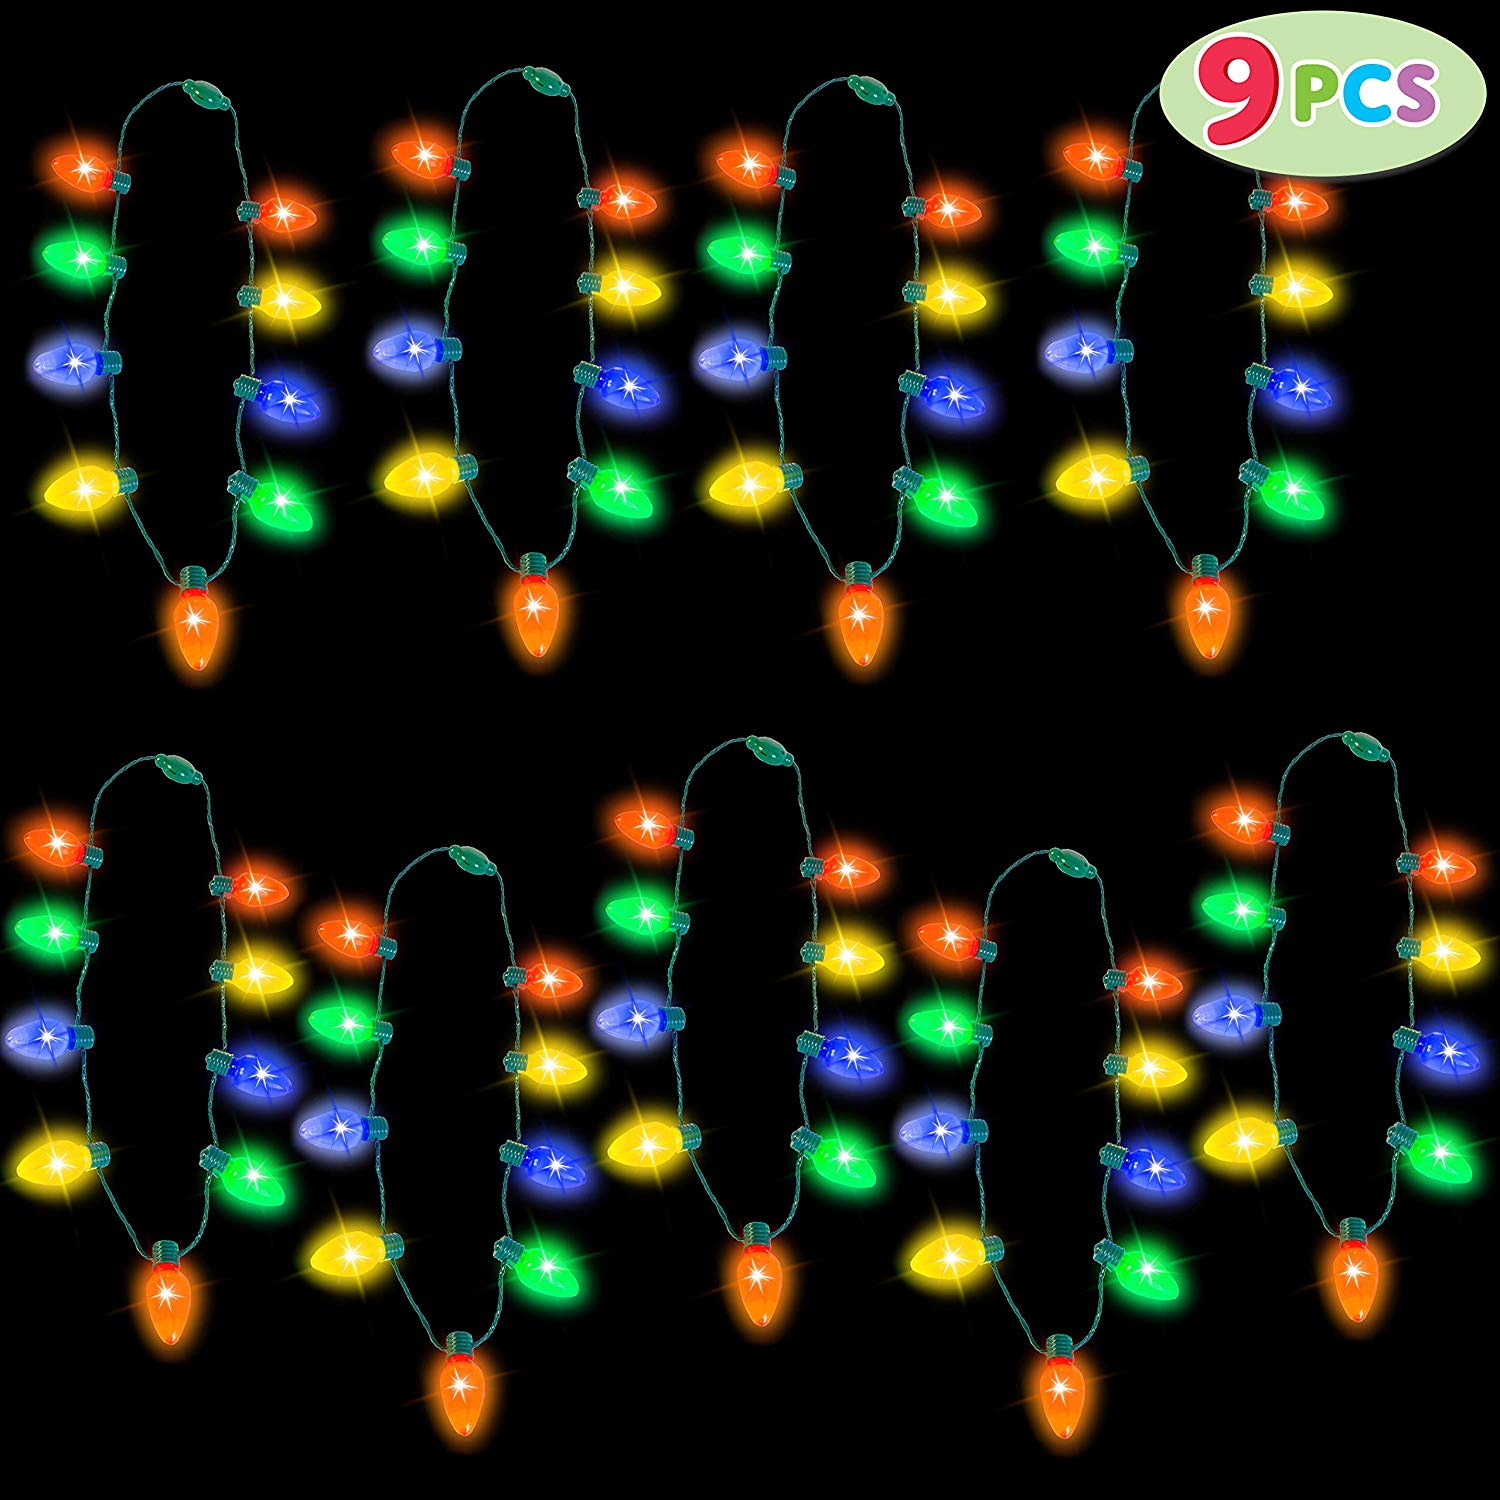 9 Piece Christmas Light Up Necklaces